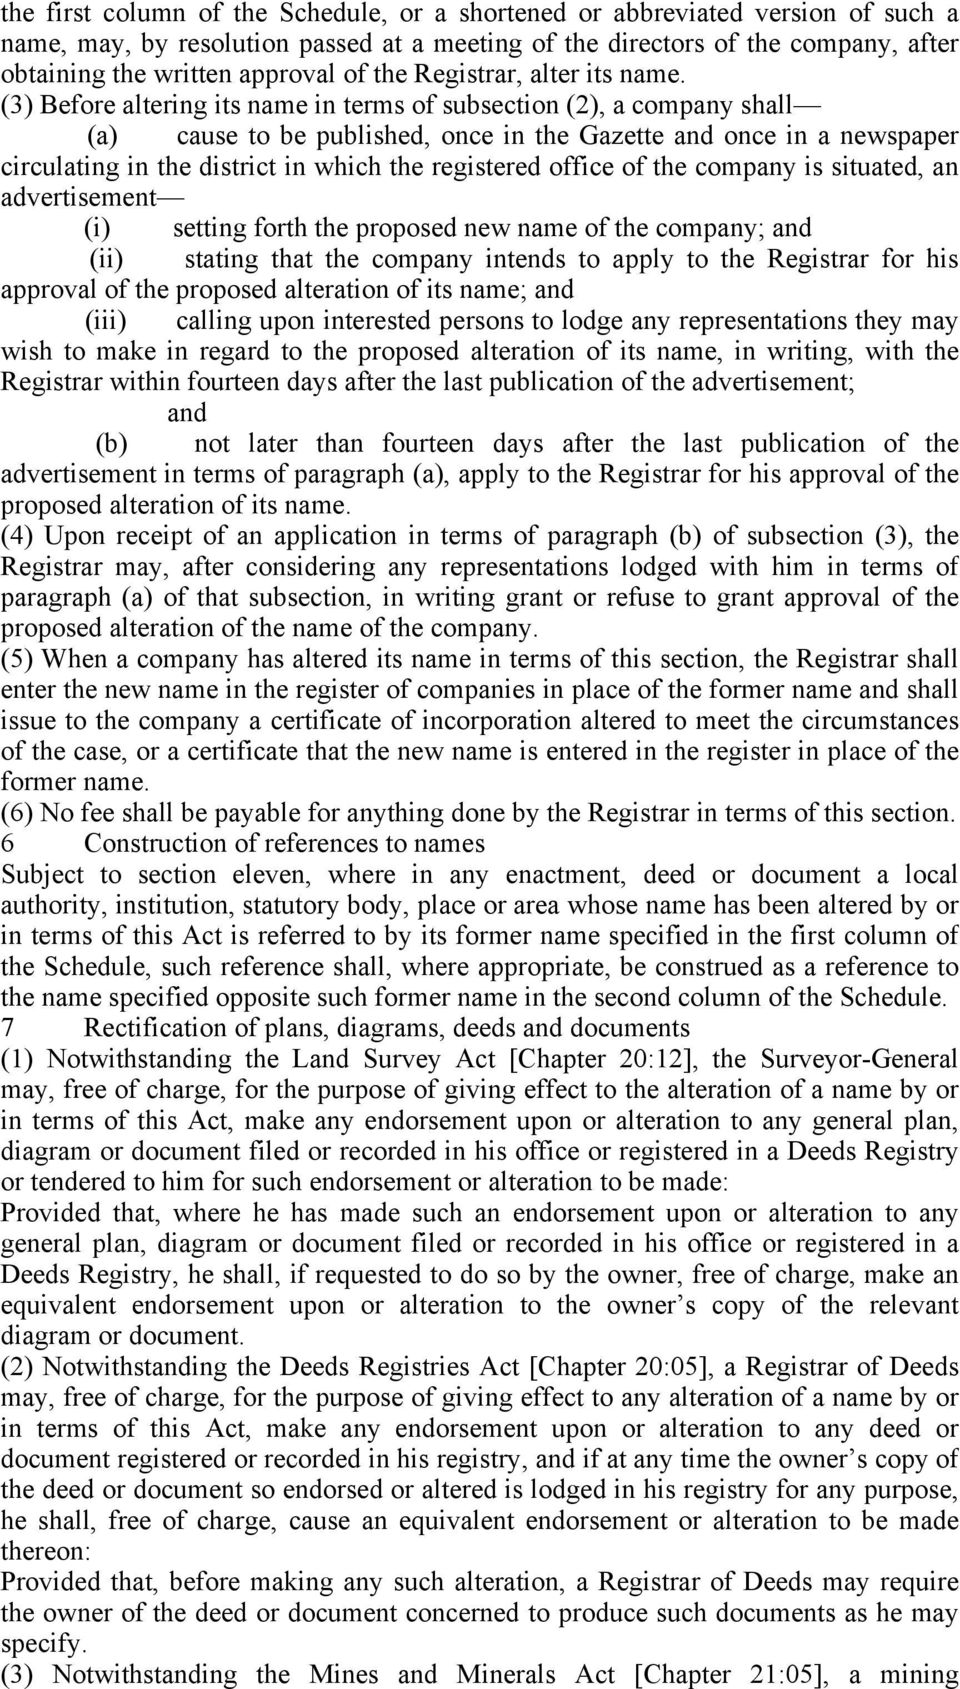 (3) Before altering its name in terms of subsection (2), a company shall (a) cause to be published, once in the Gazette and once in a newspaper circulating in the district in which the registered